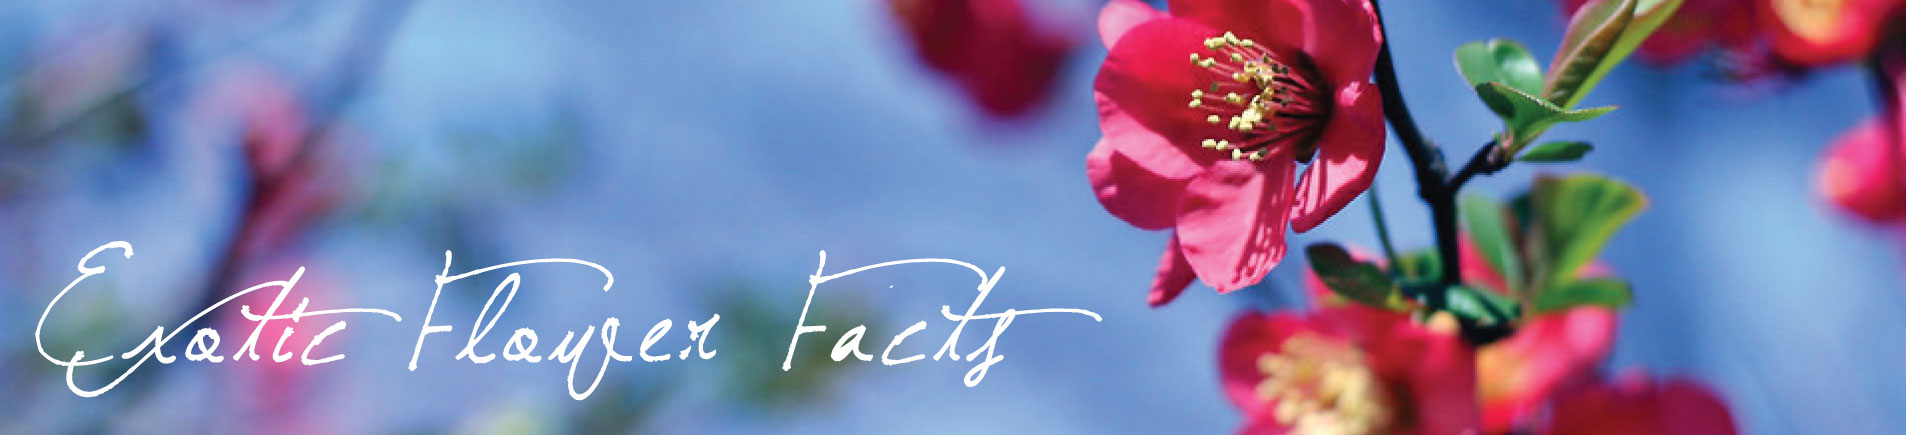 H7 Exotic Flower Facts That Will Amaze You